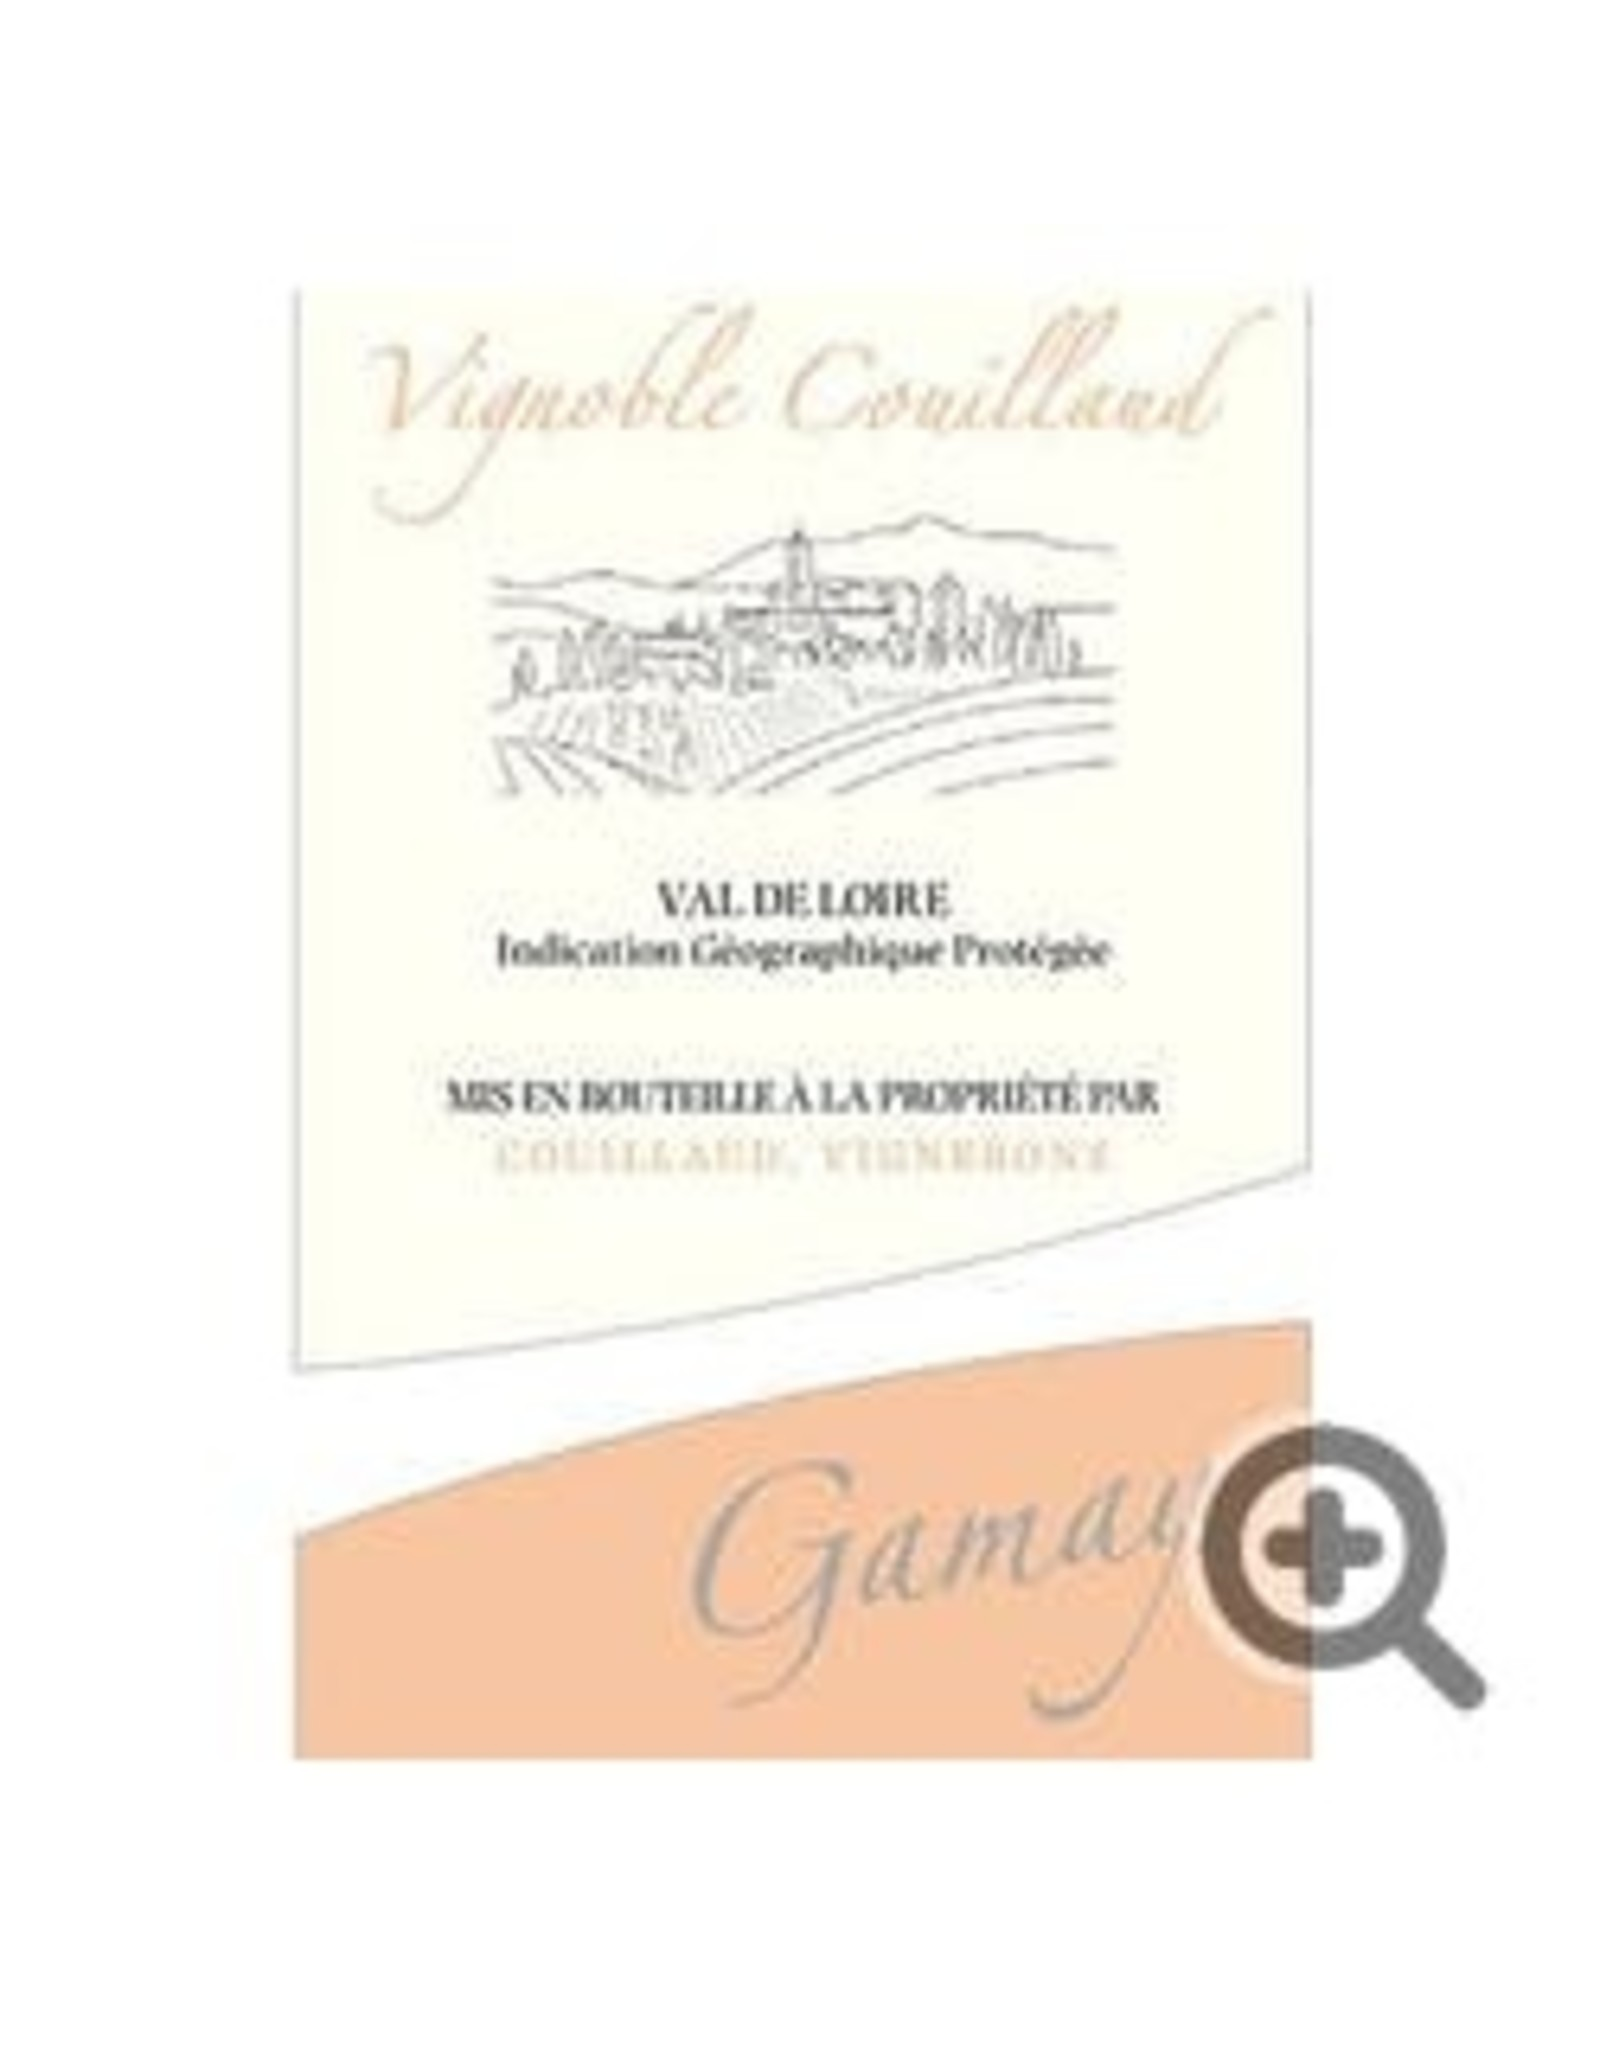 France Vignoble Couillaud Gamay Rosé